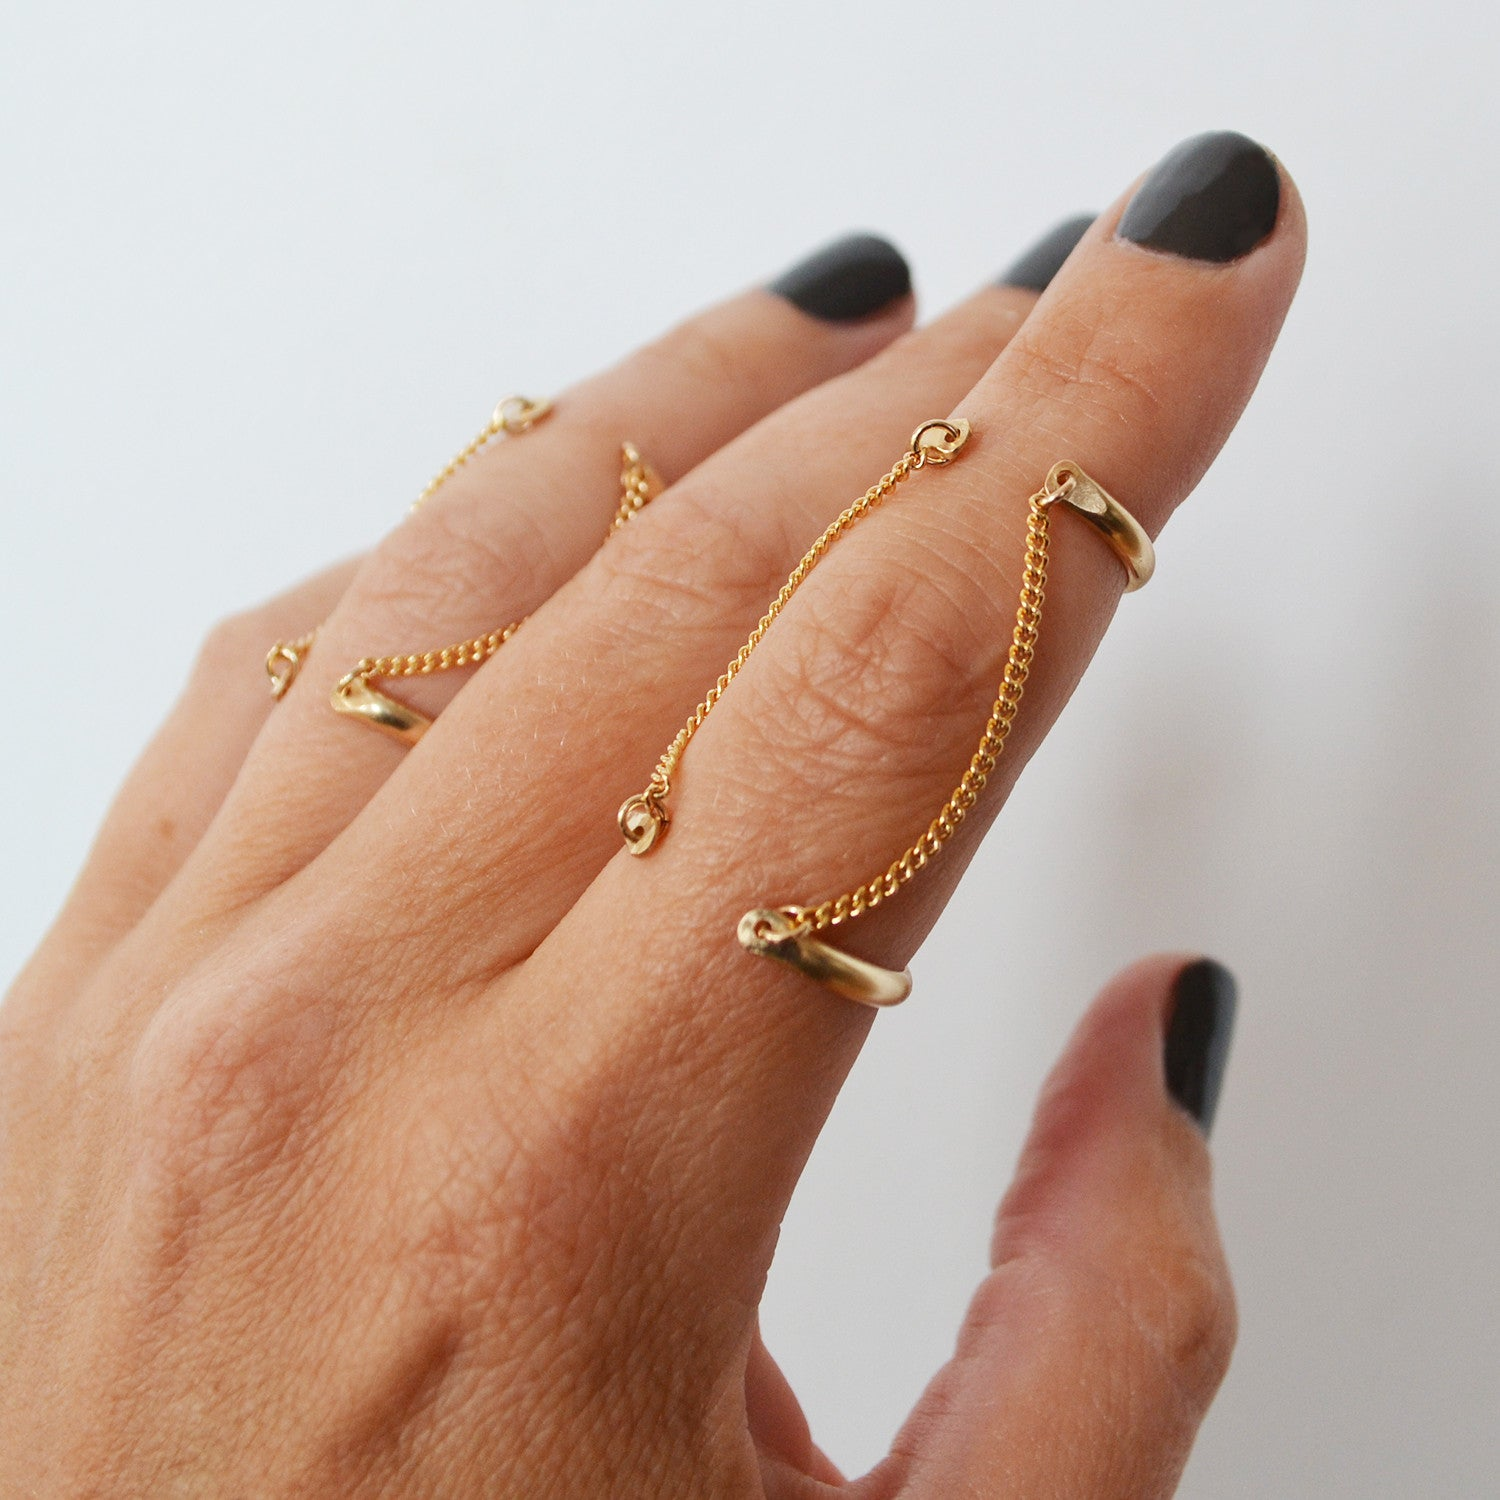 Double Chain Cuff Ring, Gold or Silver